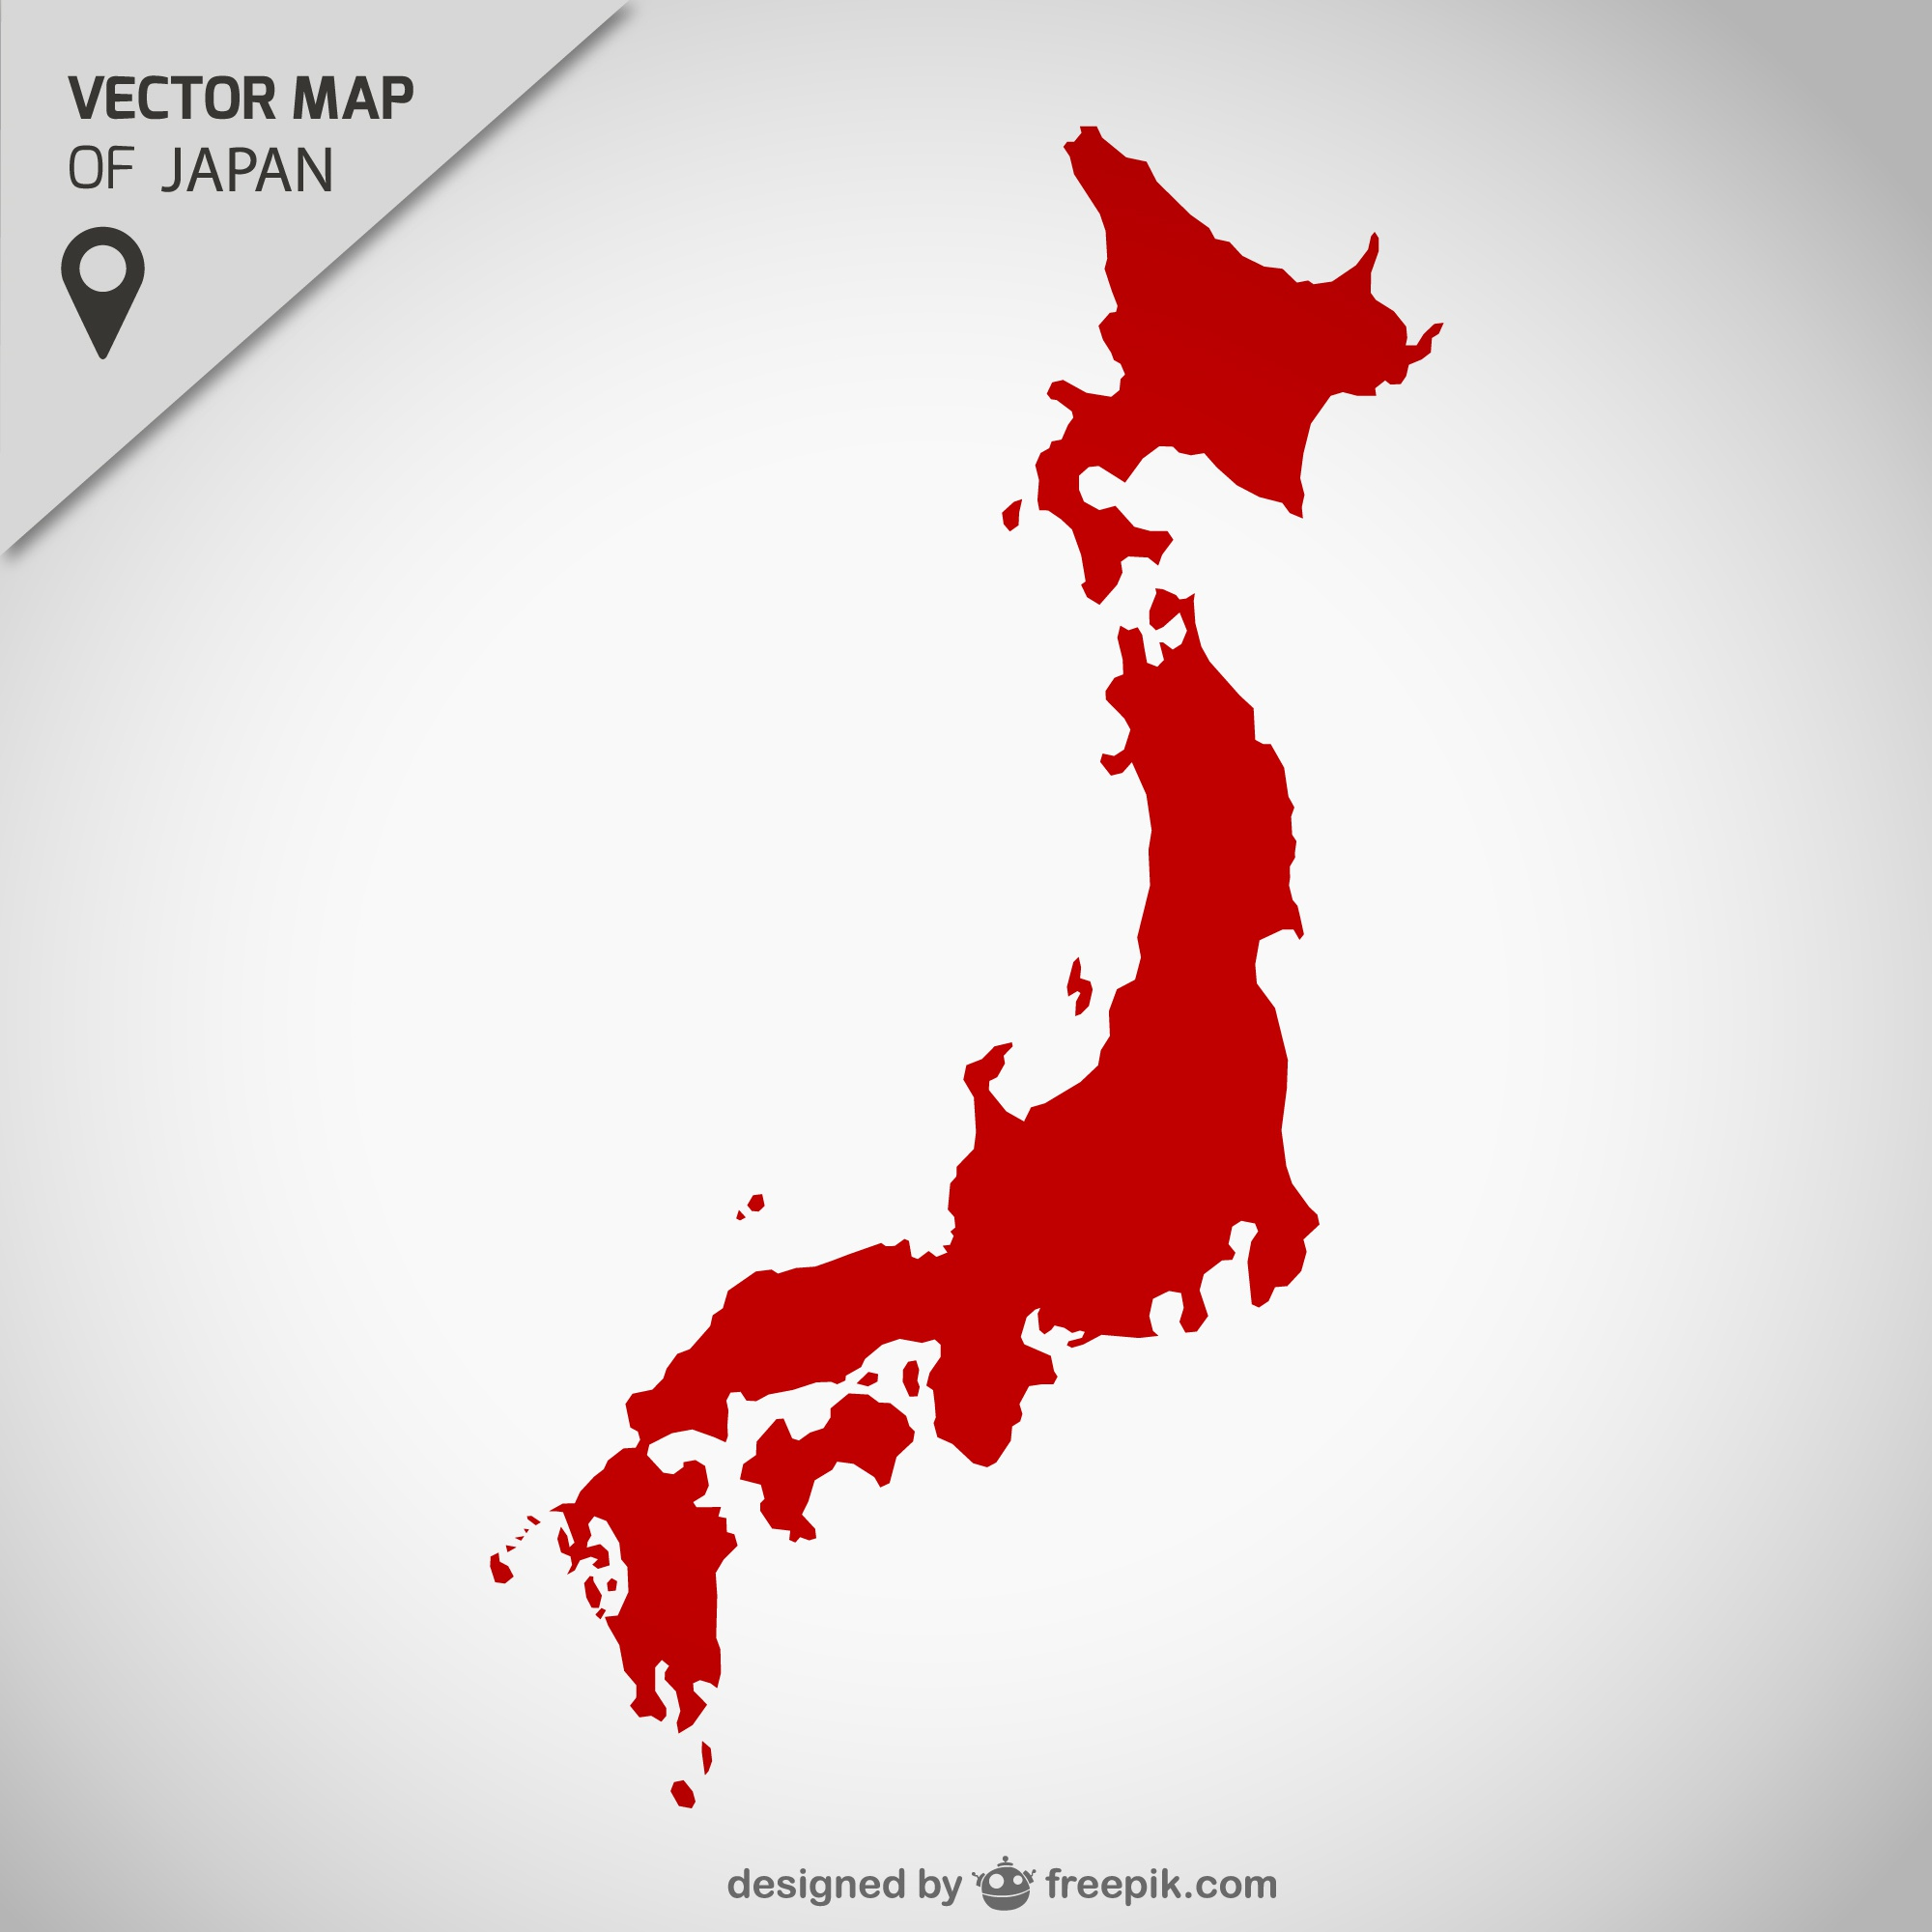 Japan free vector map